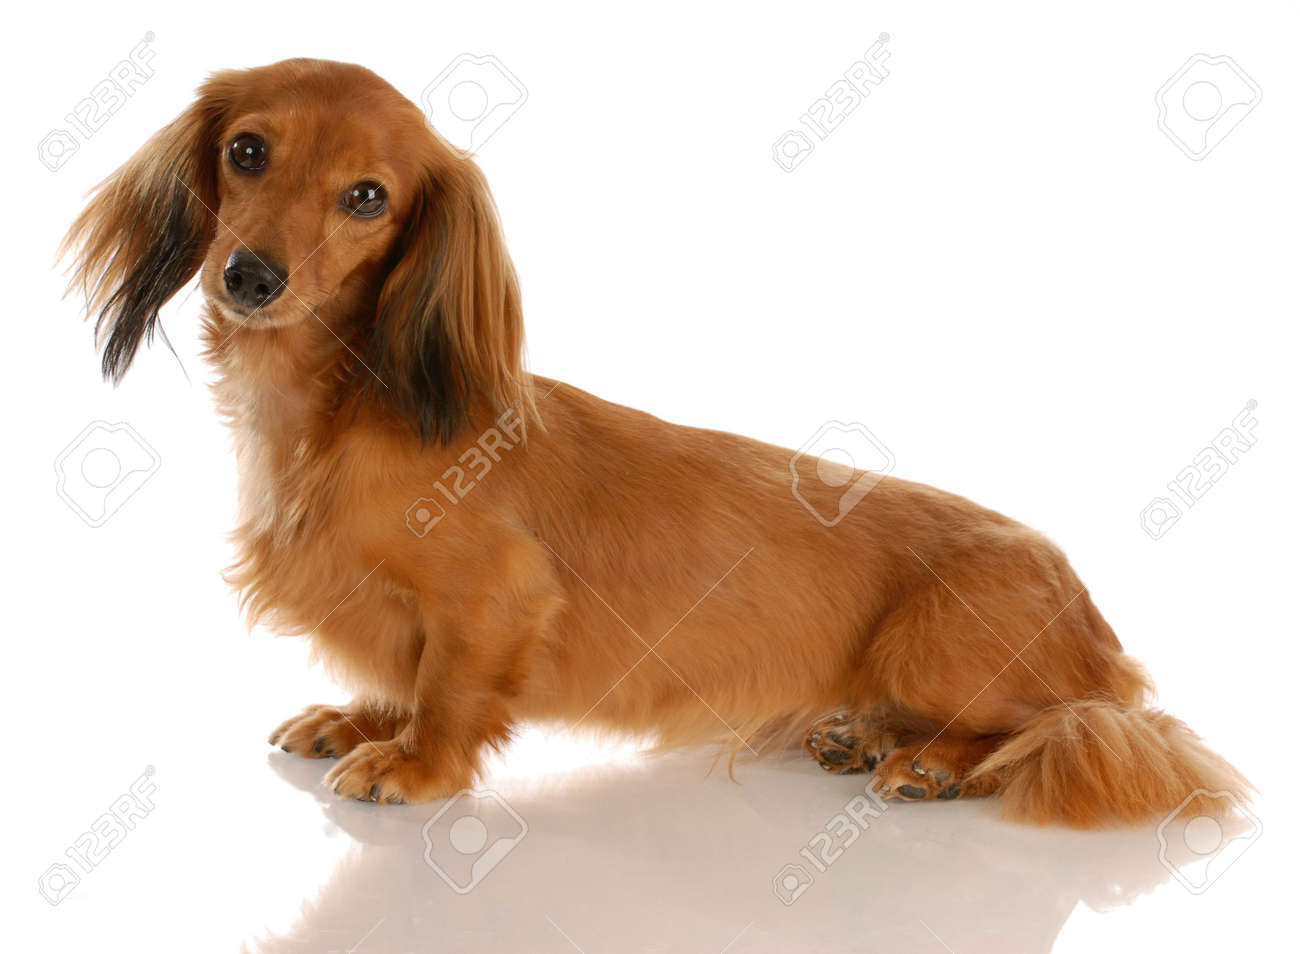 miniature long haired dachshund sitting with reflection on white